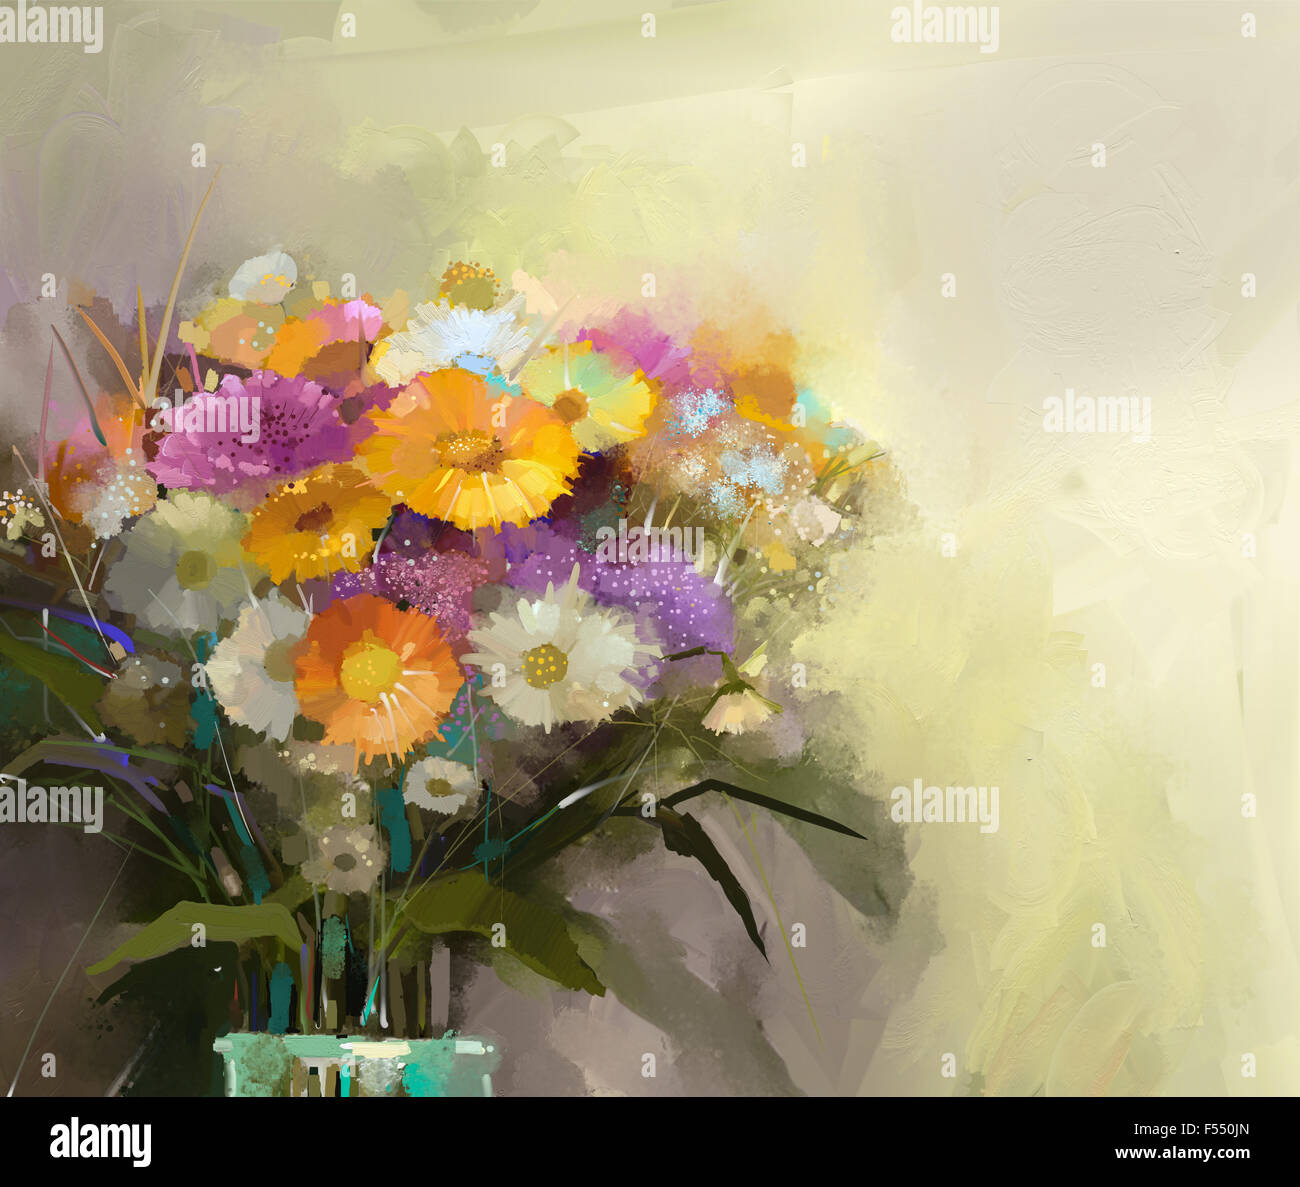 Oil painting still life bouquet of flowers in vase stock photo oil painting still life bouquet of flowers in vase reviewsmspy